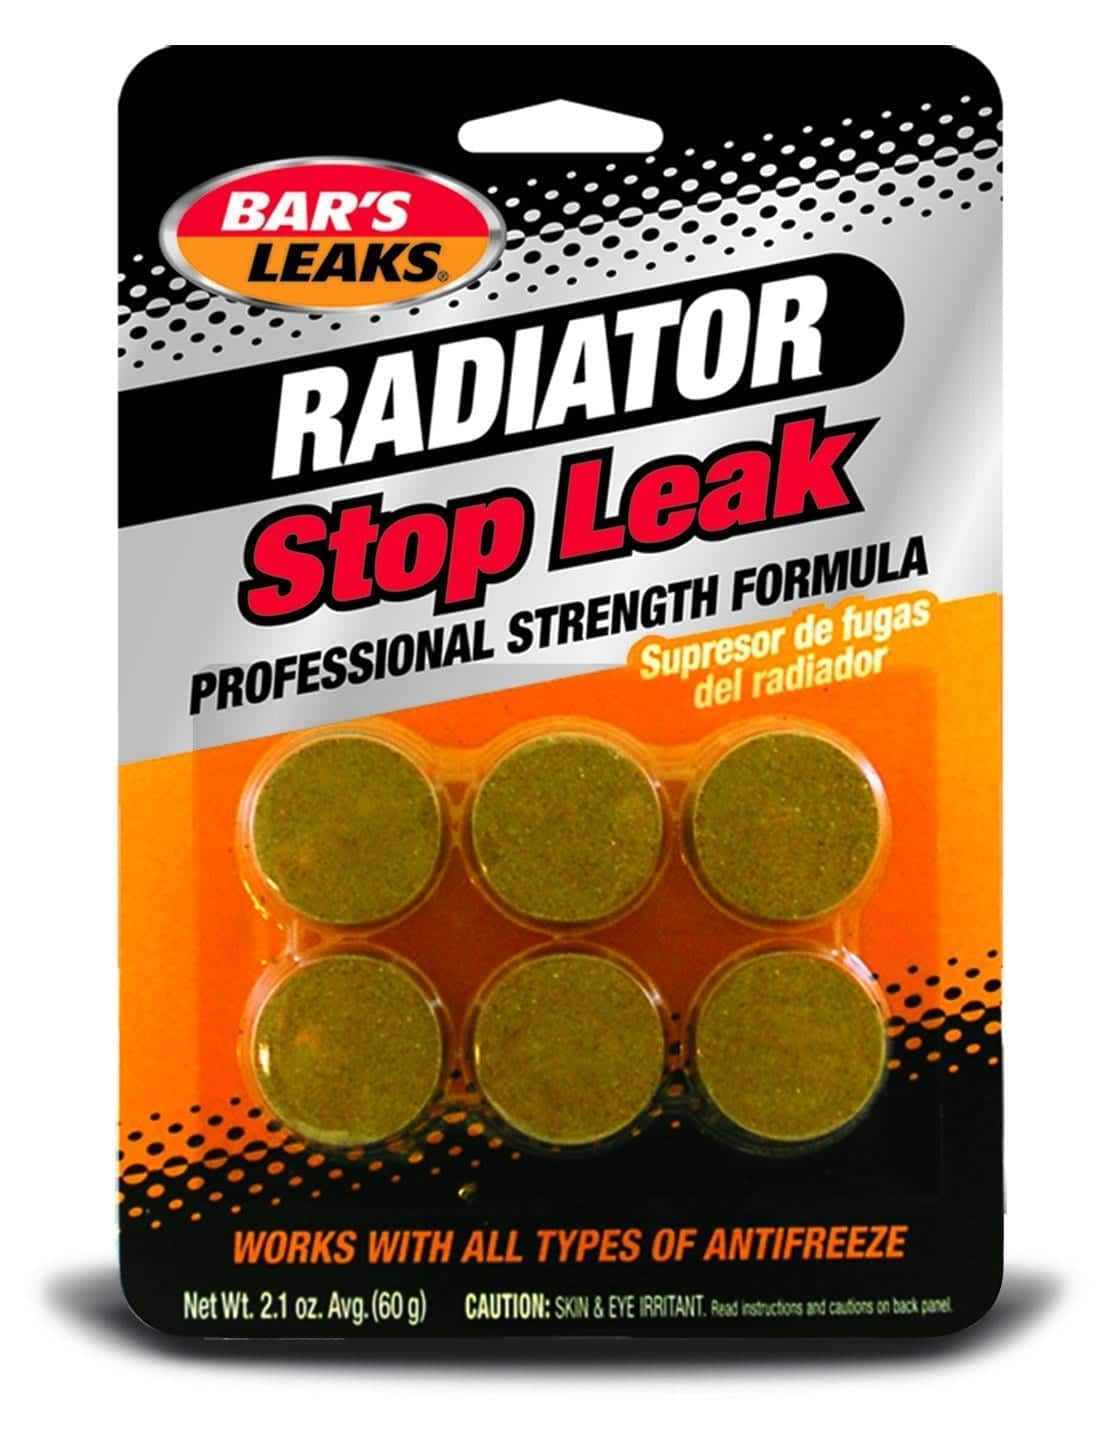 Best Programmer For 5.3 Silverado >> Best Radiator Stop Leak Review: Only Top On The Market in ...